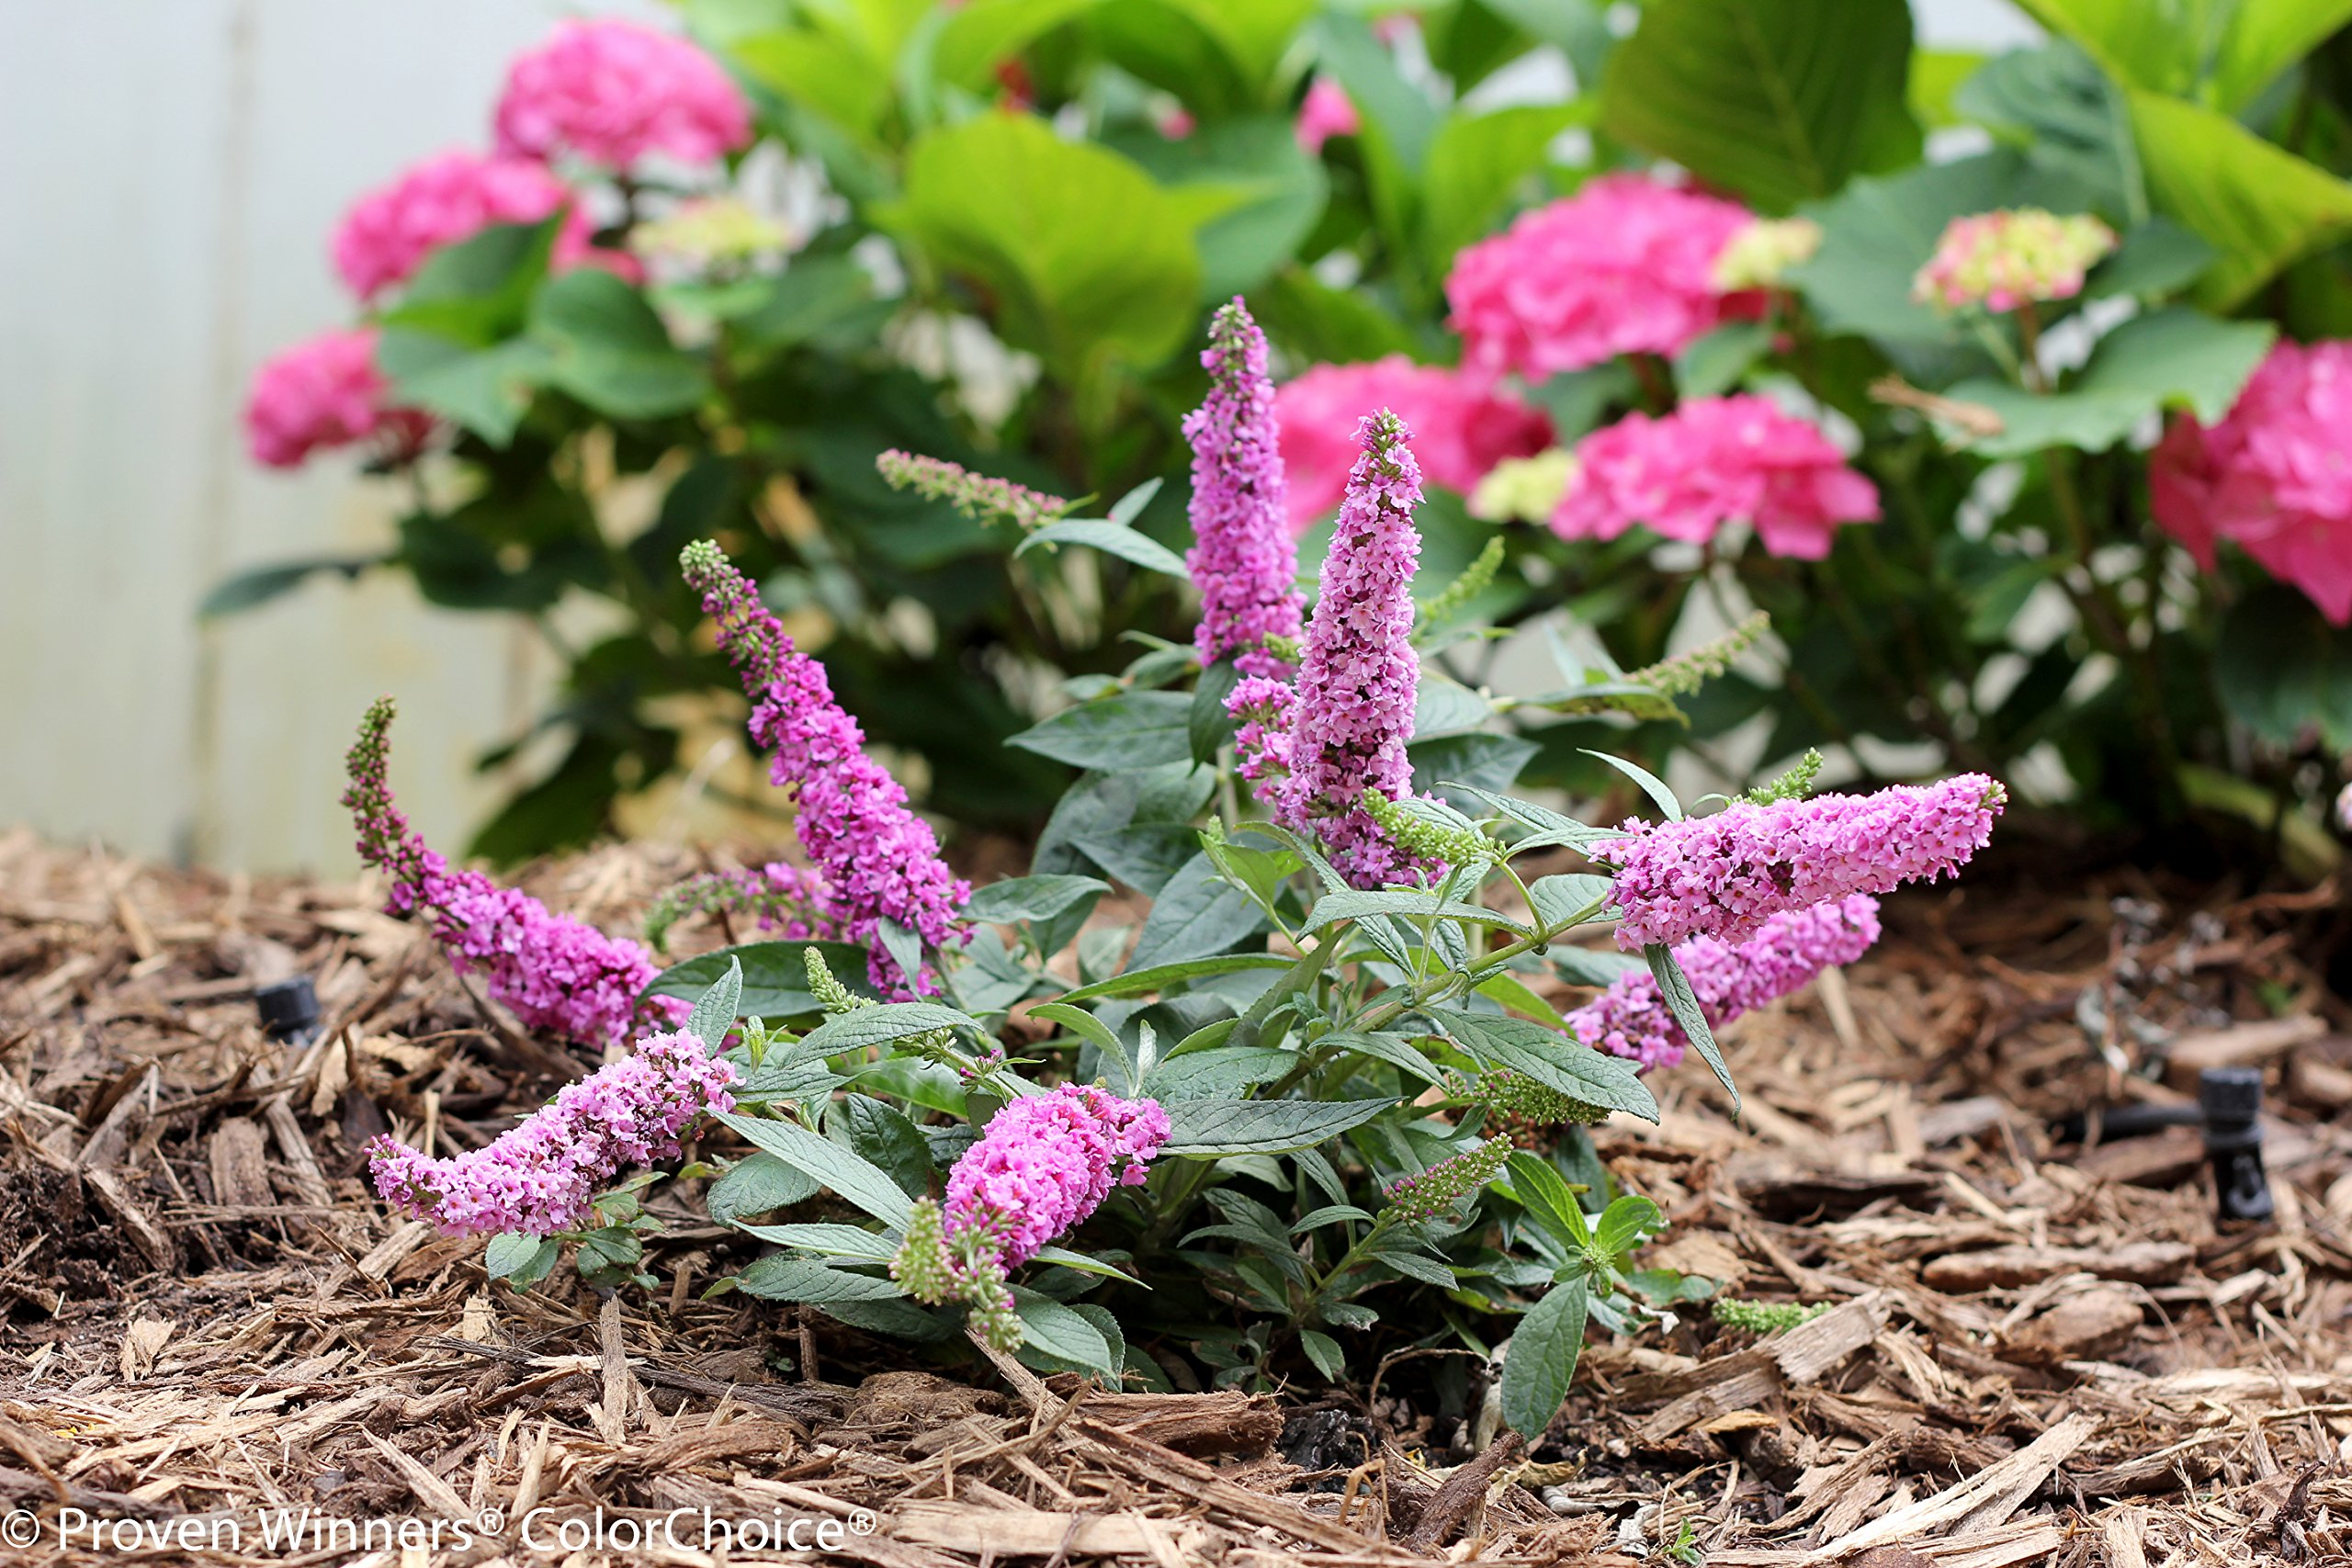 1 Gal. Lo & Behold 'Pink Micro Chip' Butterfly Bush (Buddleia) Live Shrub, Pink Flowers by Proven Winners (Image #2)